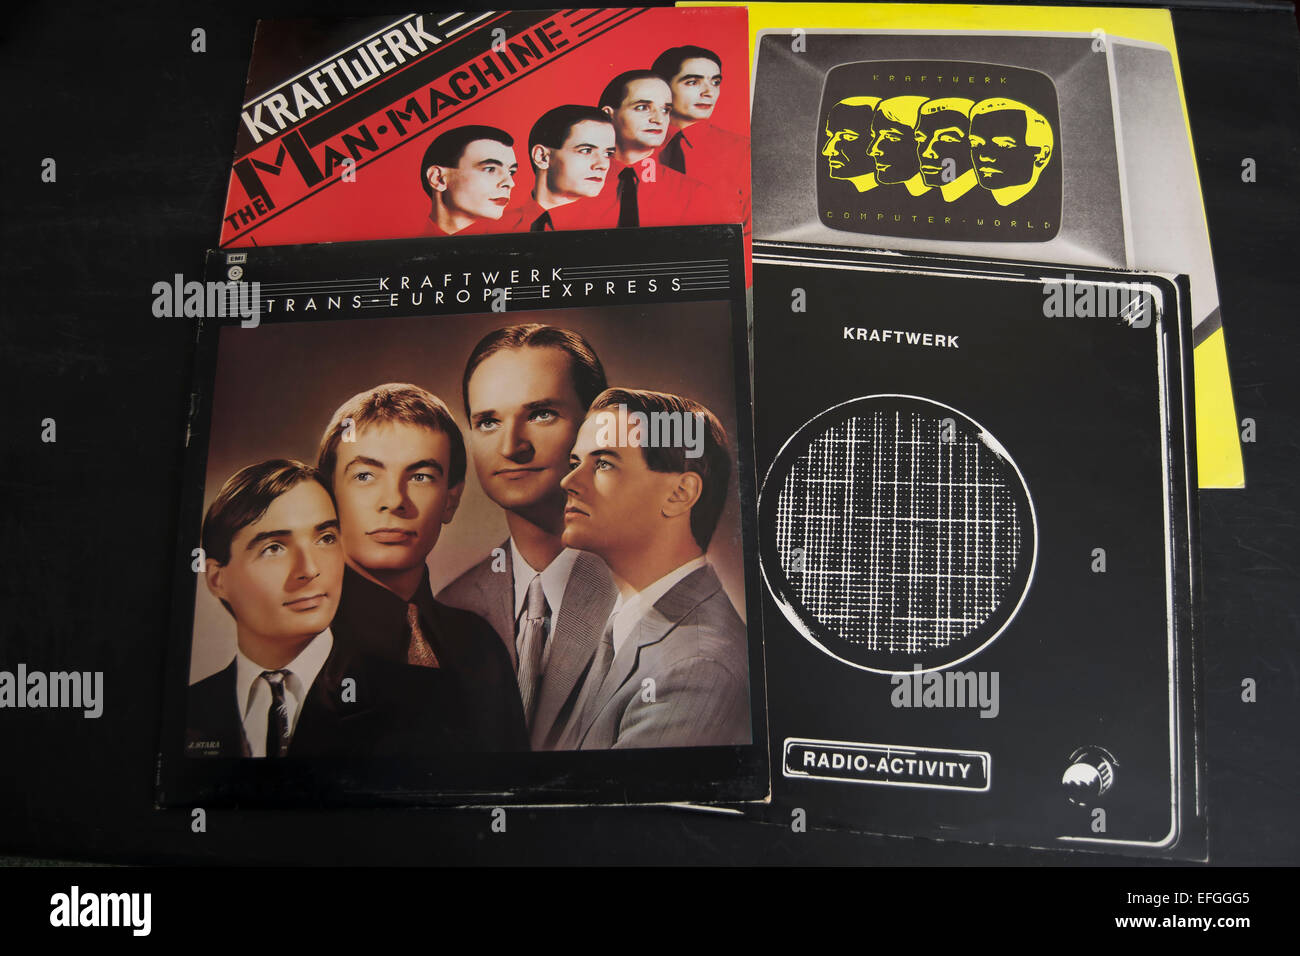 front covers of the kraftwerk albums, radio-activity, trans-europe express, the man machine and computer world Stock Photo